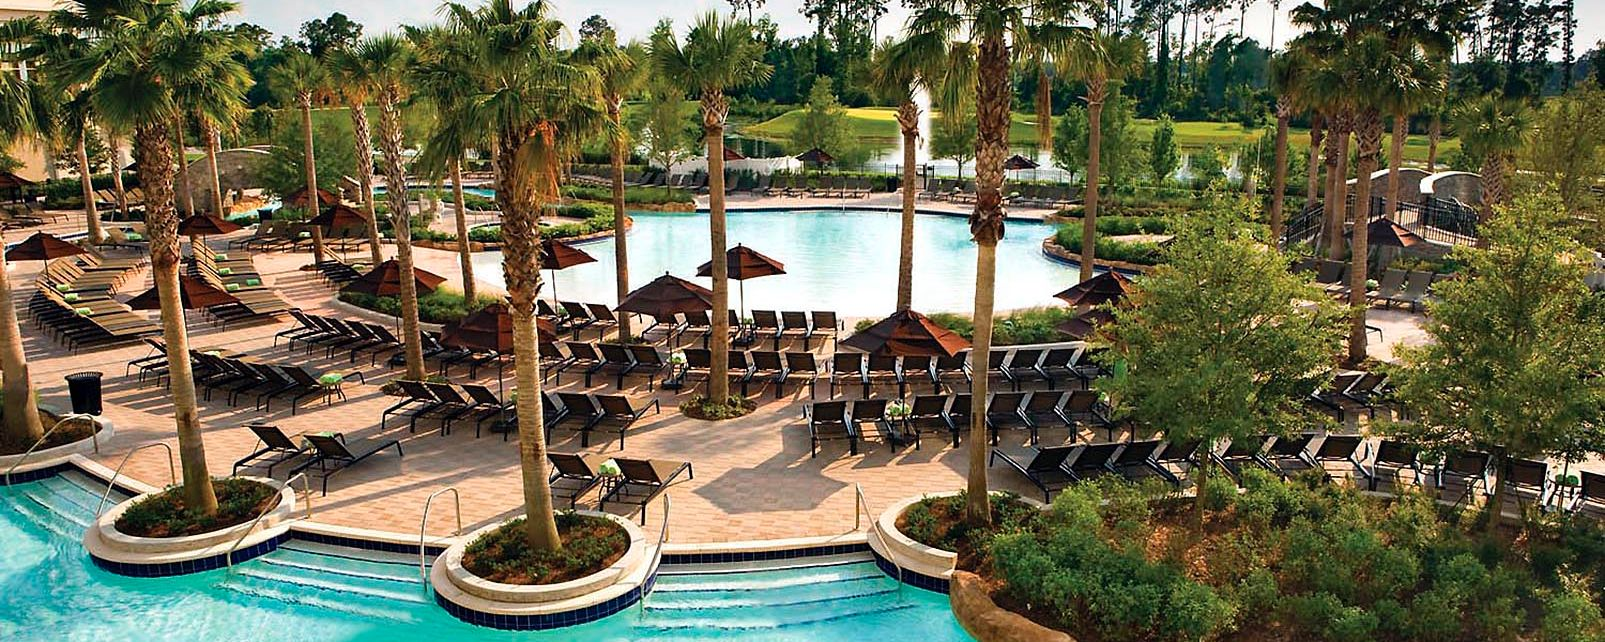 Hotel Hilton Bonnet Creek